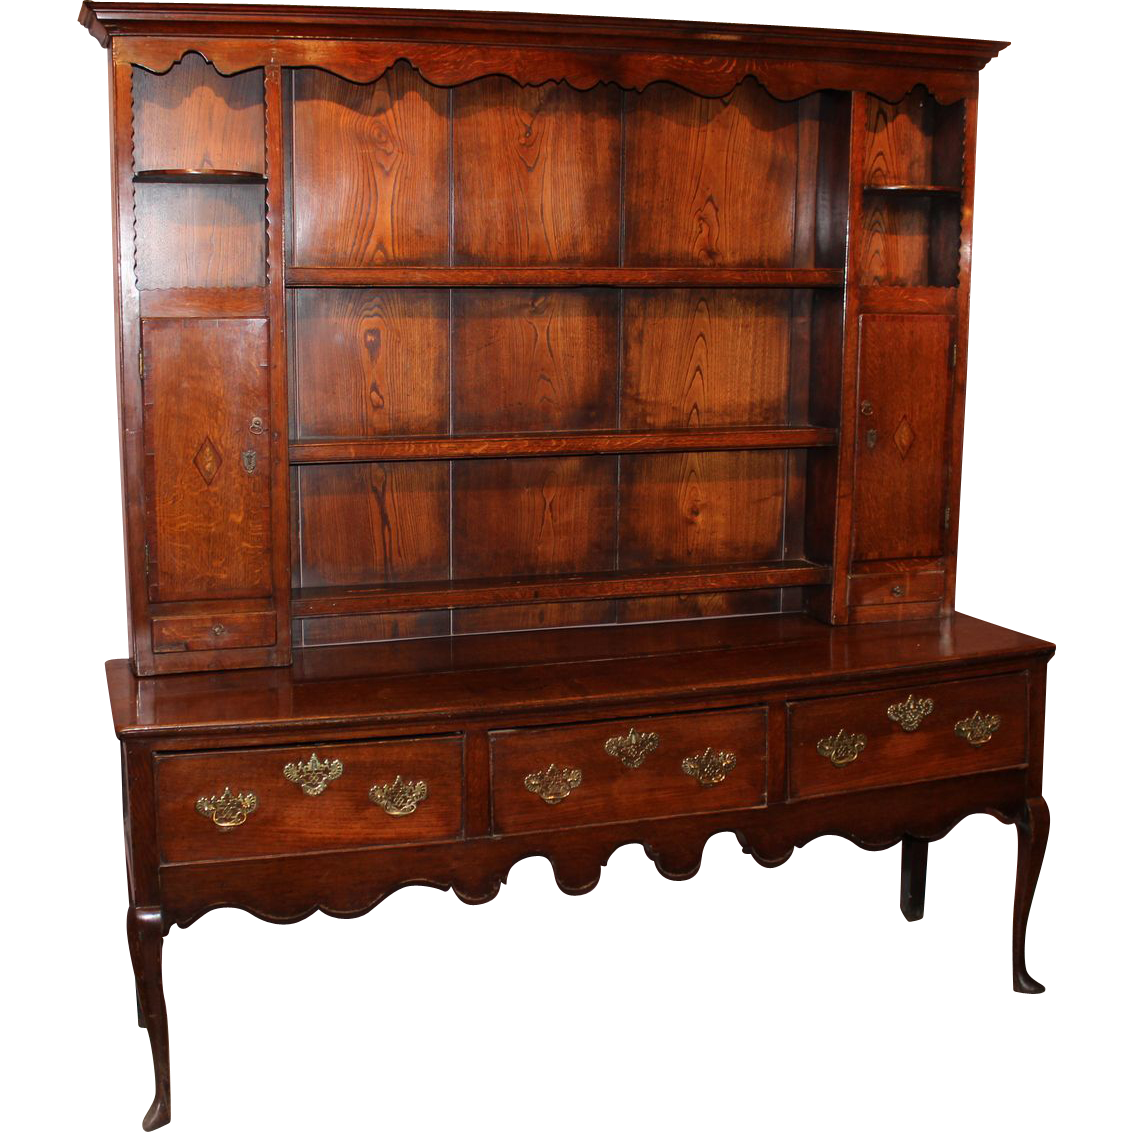 18th c English Oak Dresser and Top